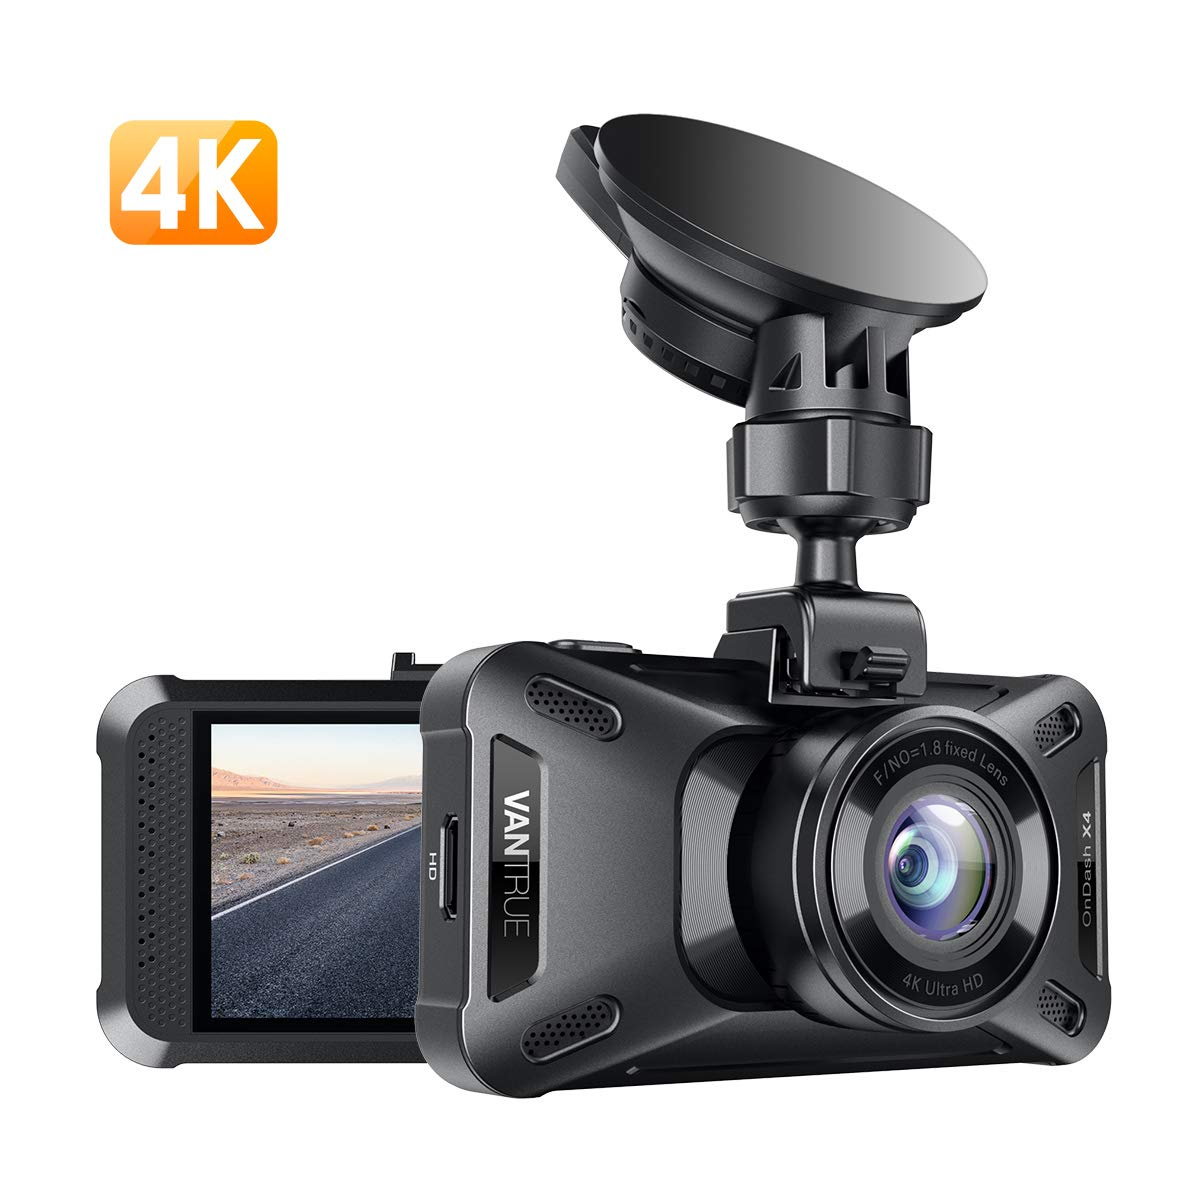 Vantrue X4 UHD 4K 3840X2160P @30fps Dash Cam, Super Capacitor Dash Camera 3'' LCD 160° Wide Angle Car Camera with Night Vision, 24Hs Parking Mode, Motion Detection, Time Lapse, WDR, Support 256GB Max